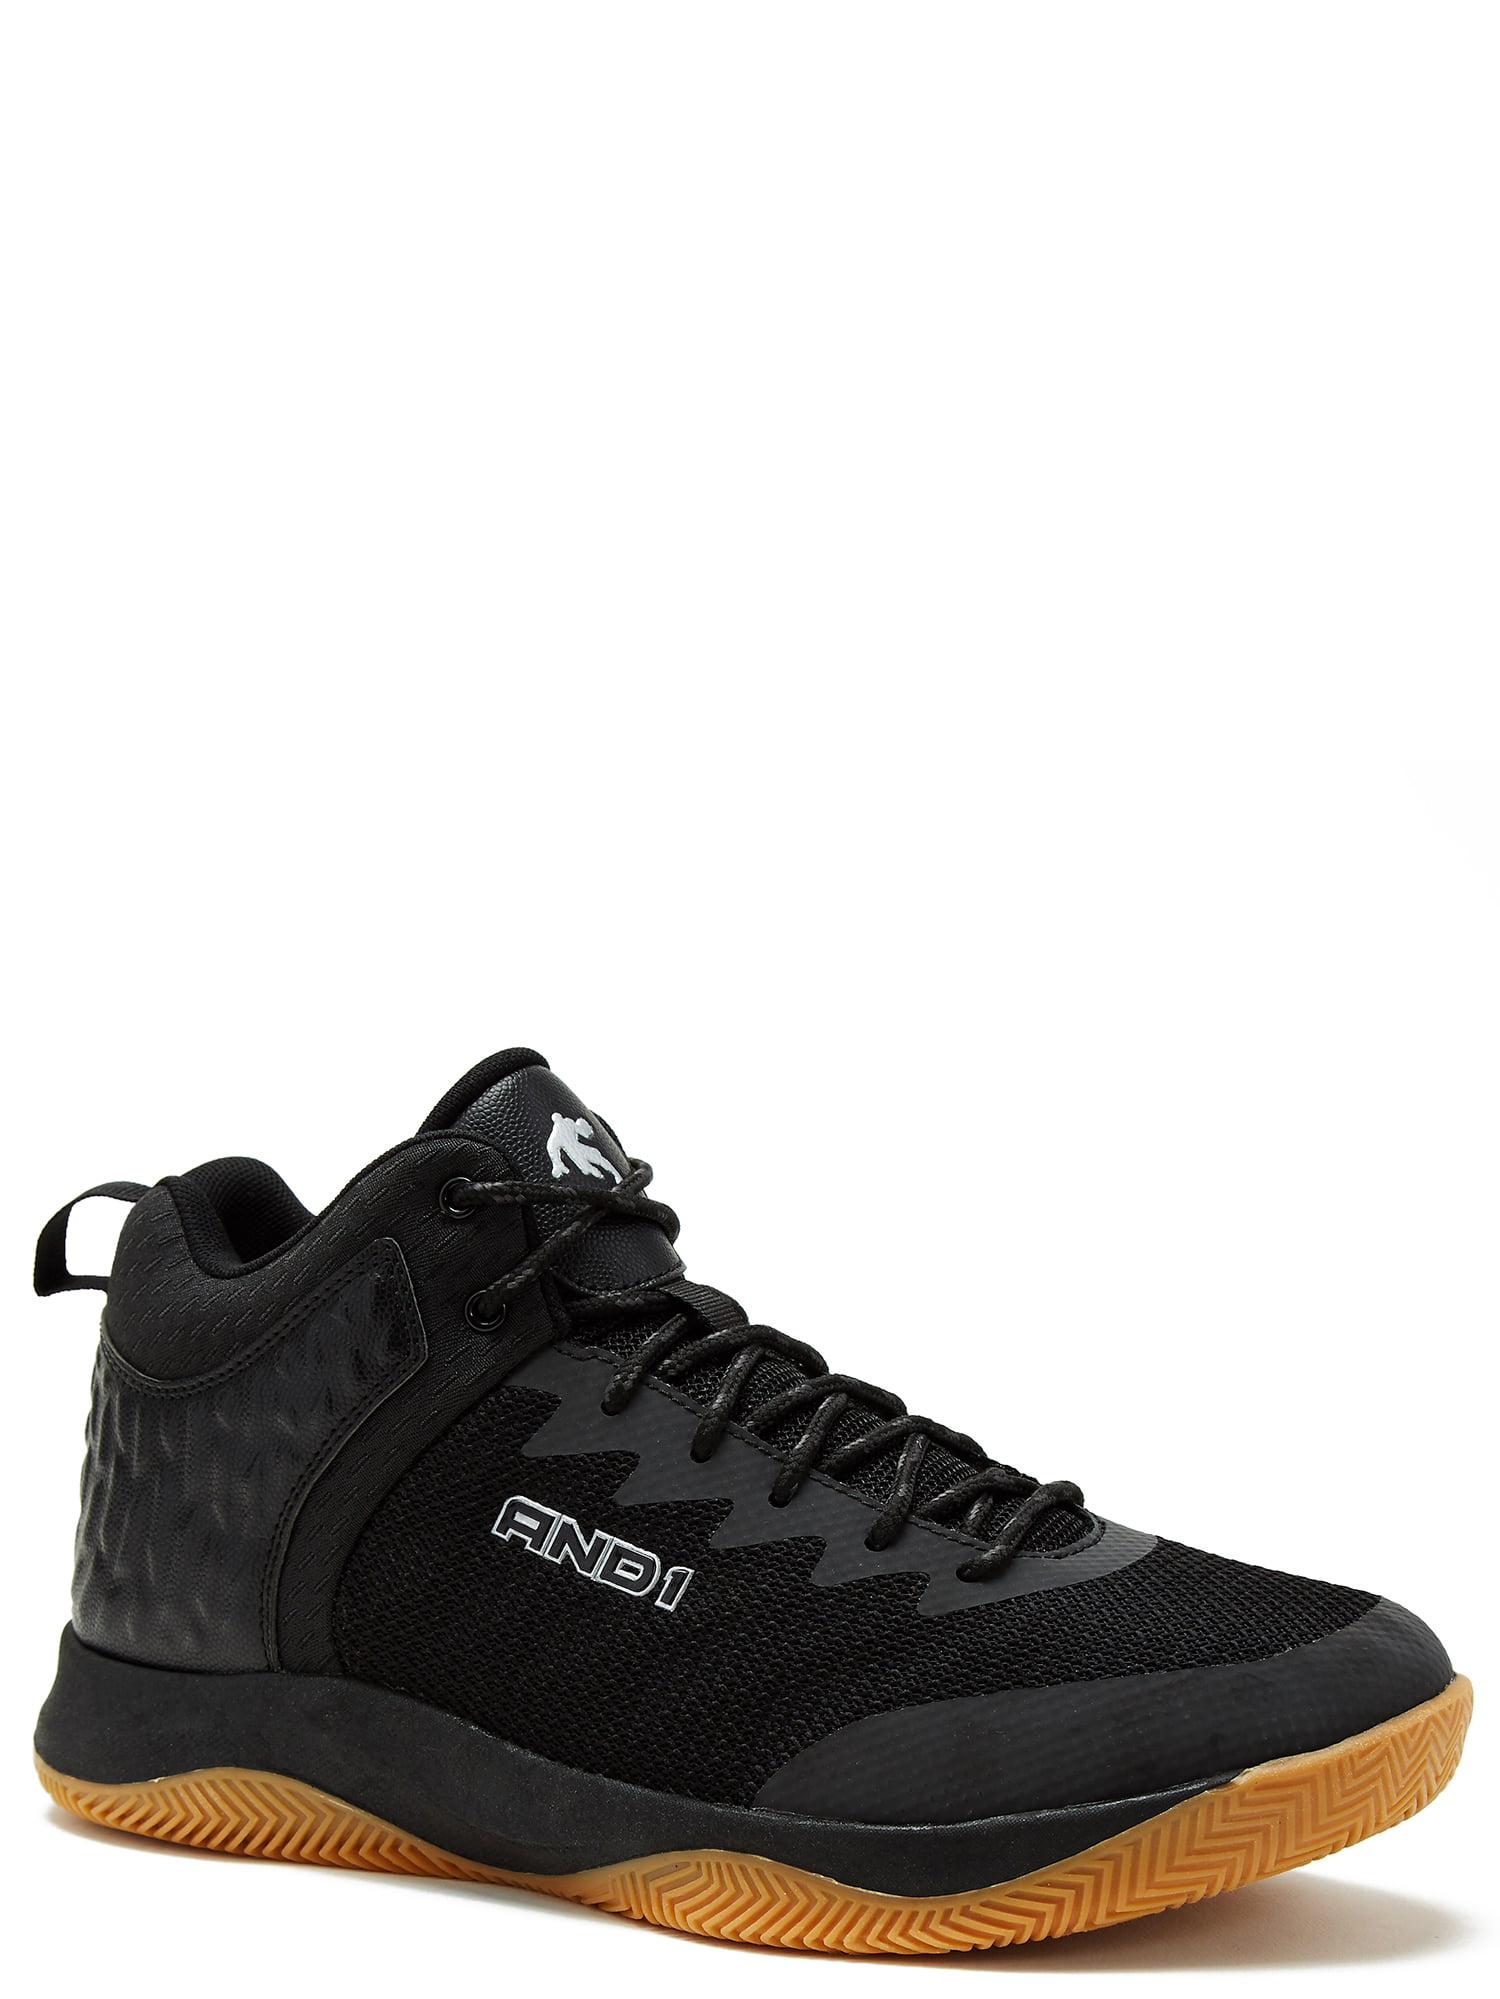 AND1 - AND 1 Men's Court Shoe - Walmart